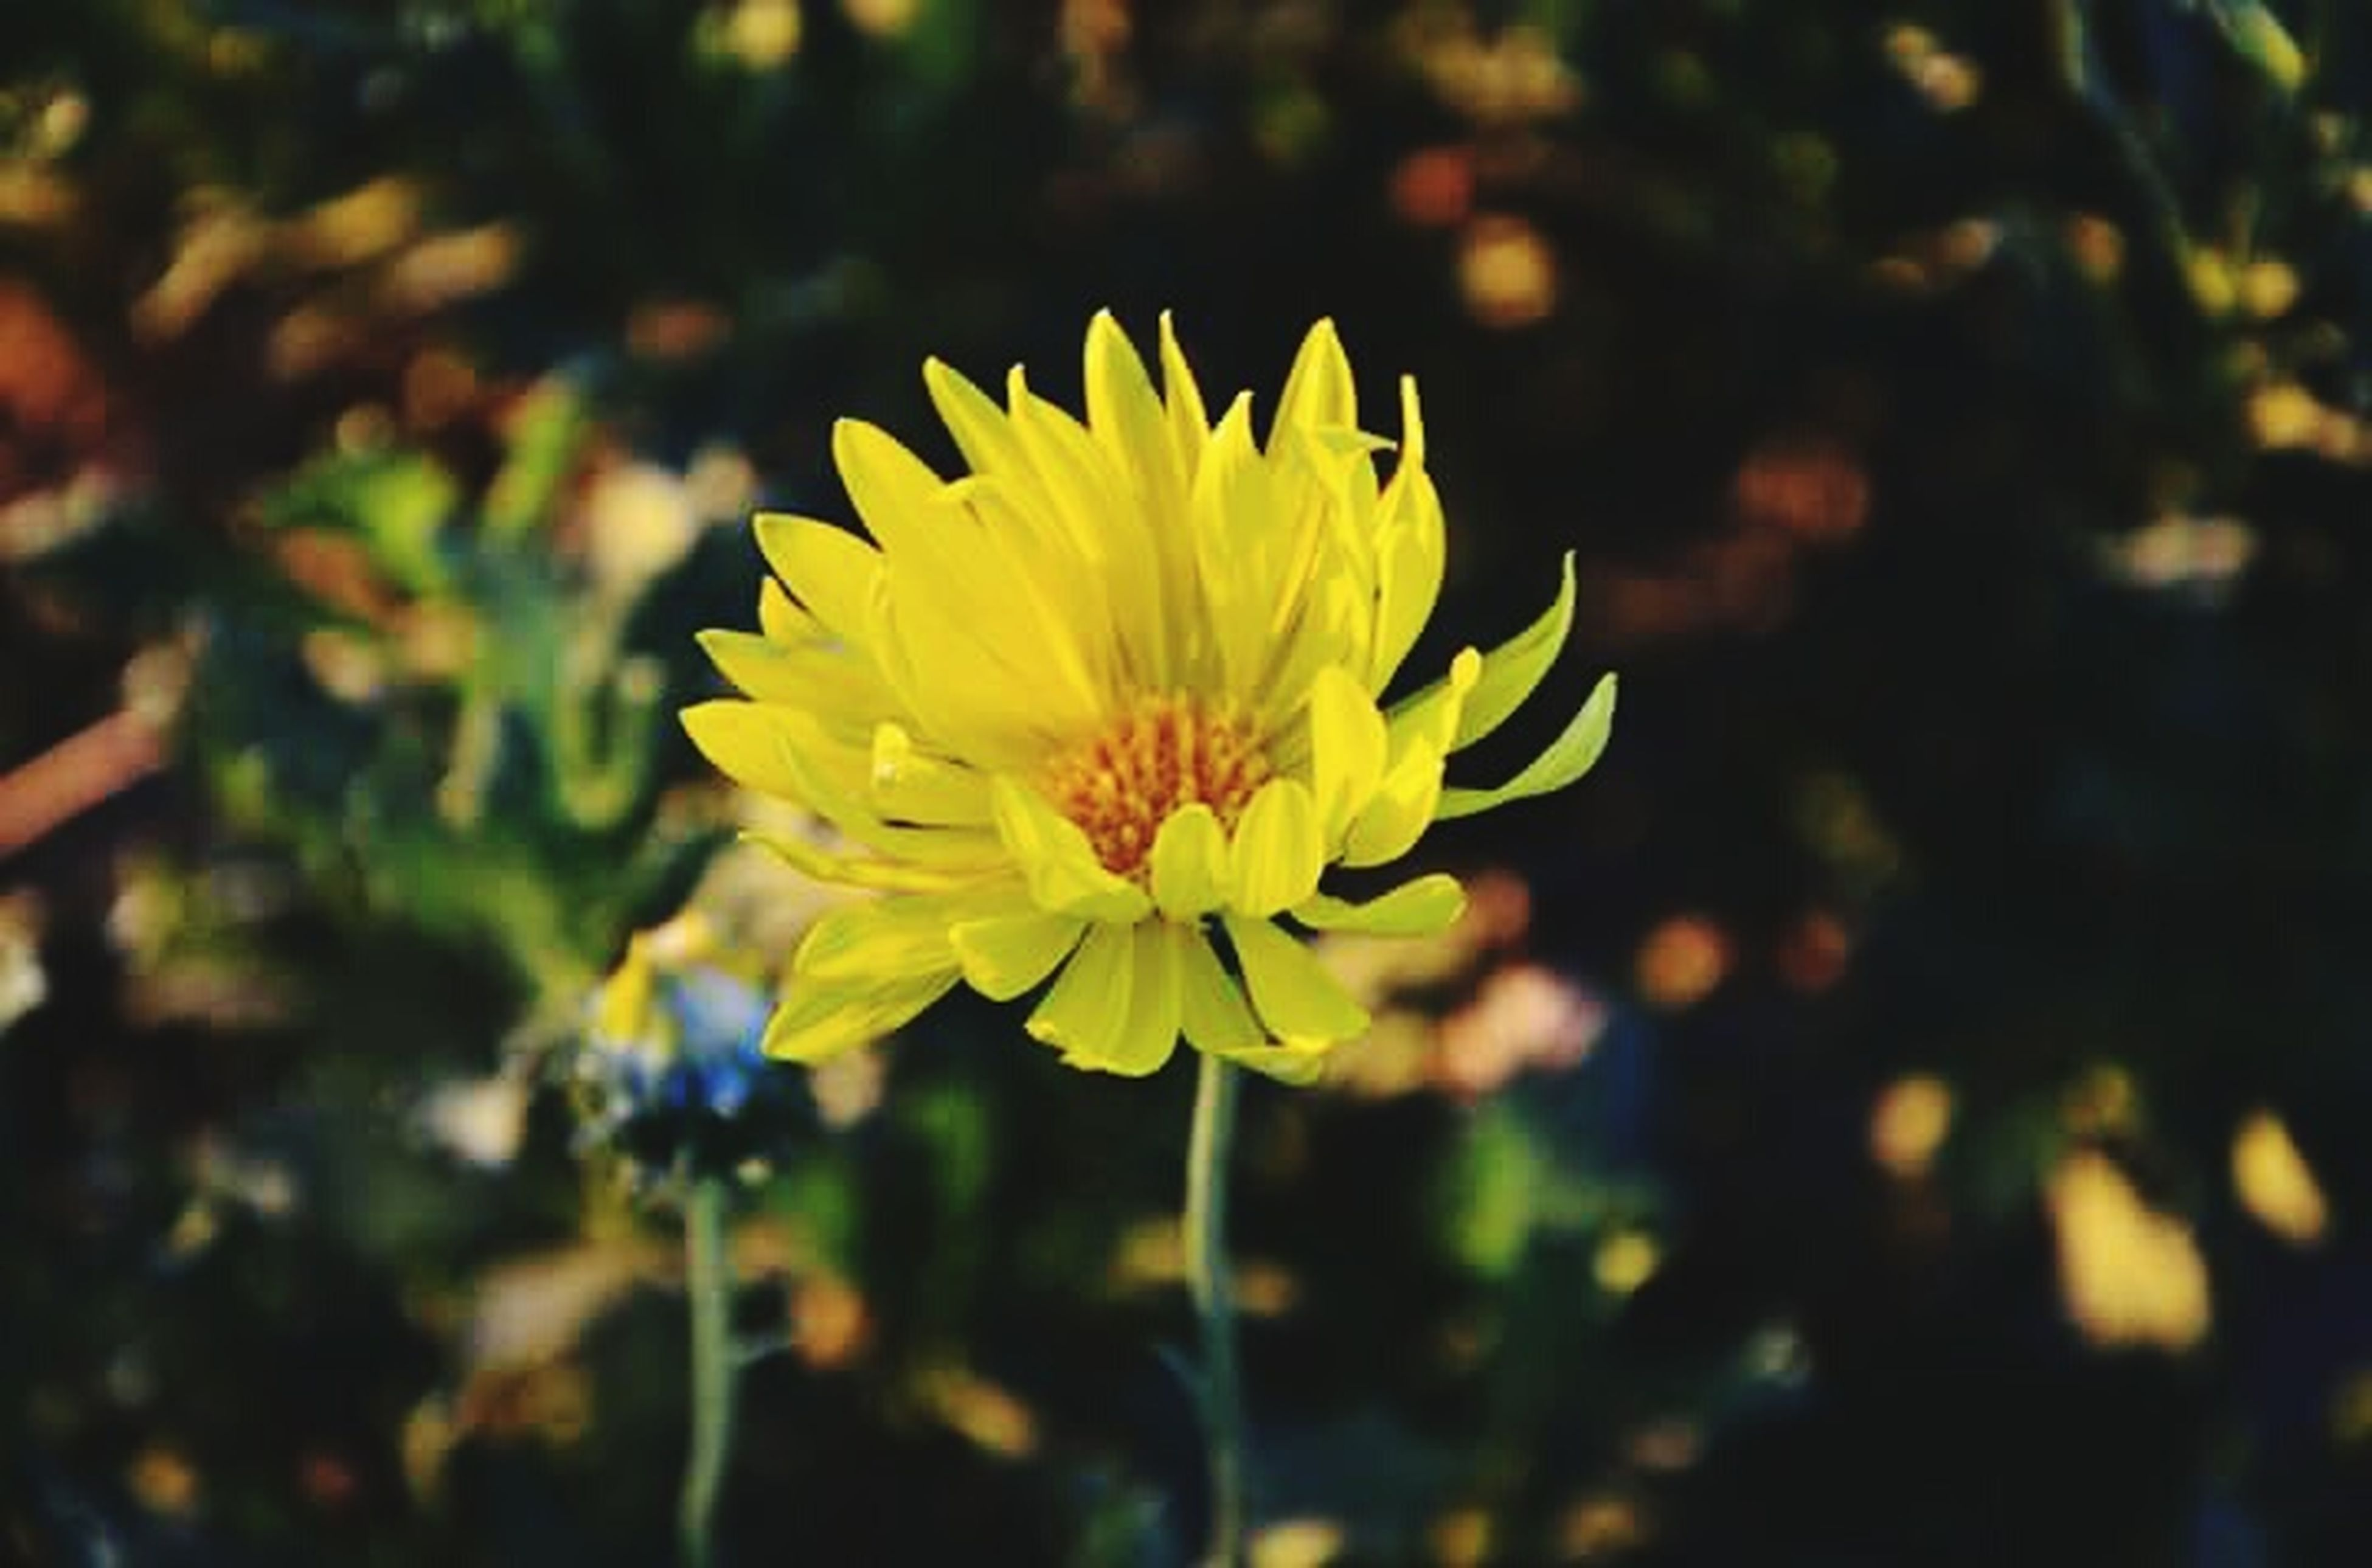 flower, yellow, nature, growth, petal, fragility, plant, beauty in nature, freshness, no people, spring, blooming, flower head, close-up, outdoors, day